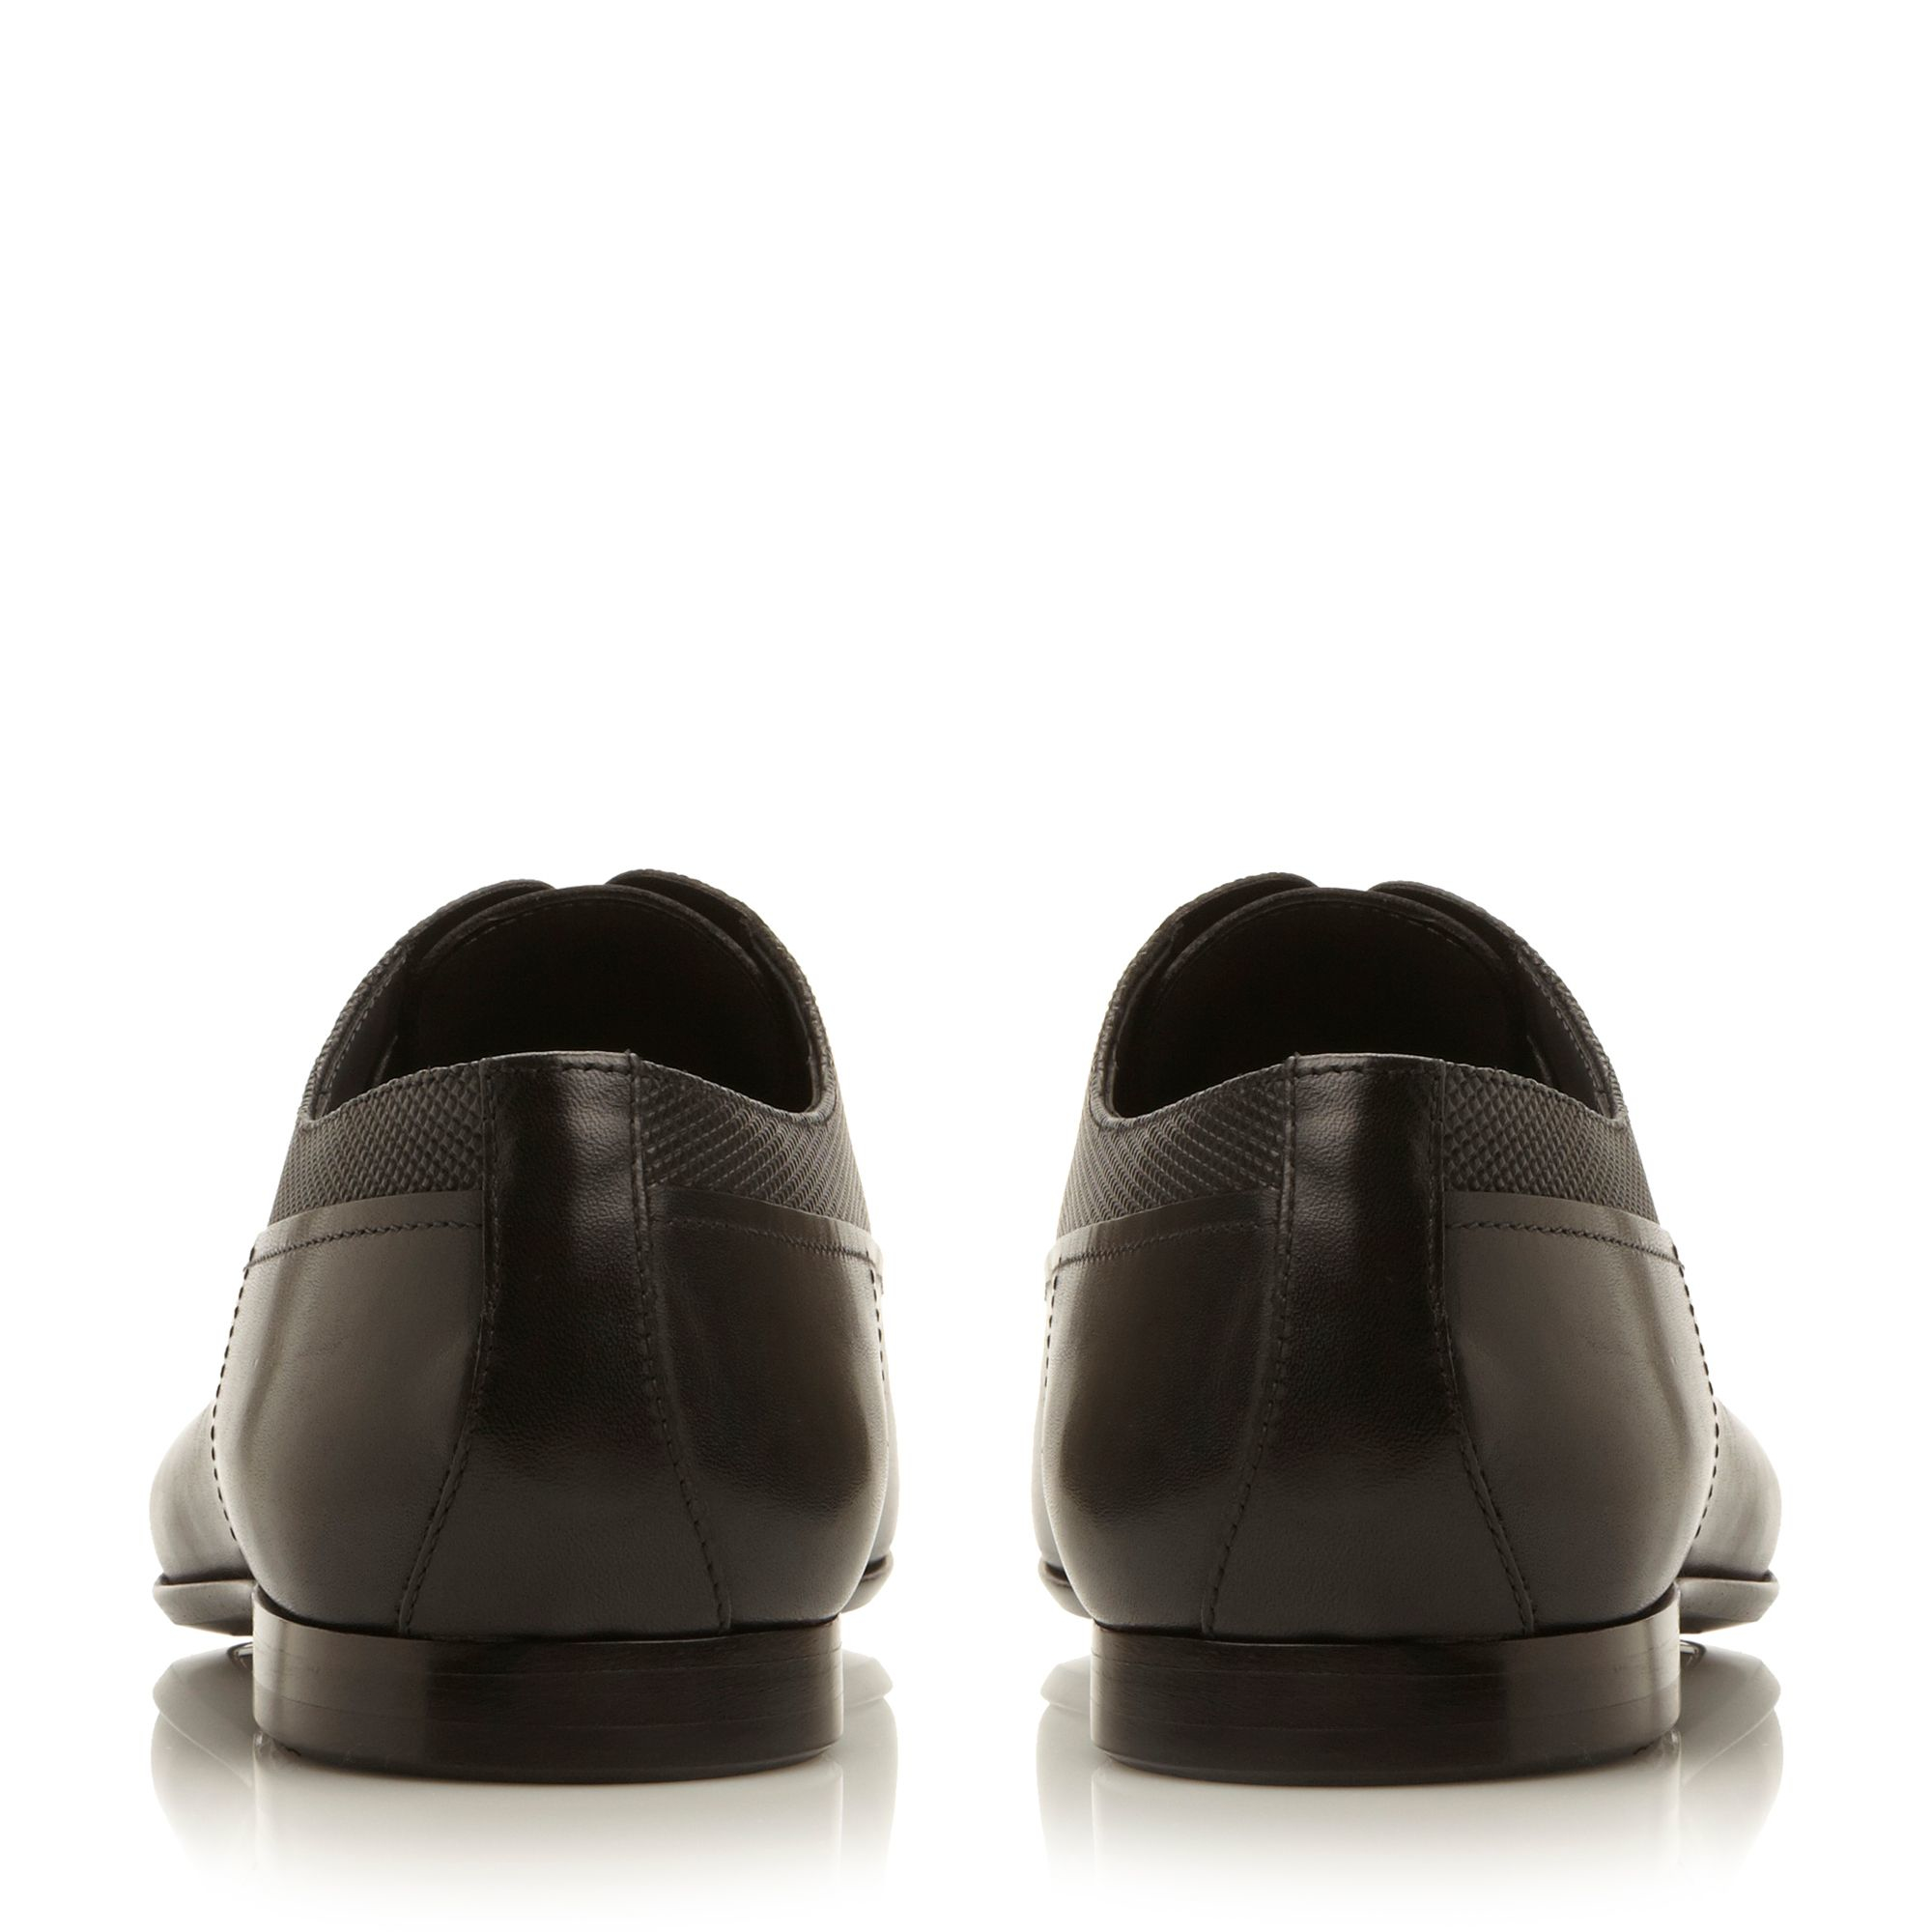 Hugo Boss Vintio Printed Leather Oxford Shoes